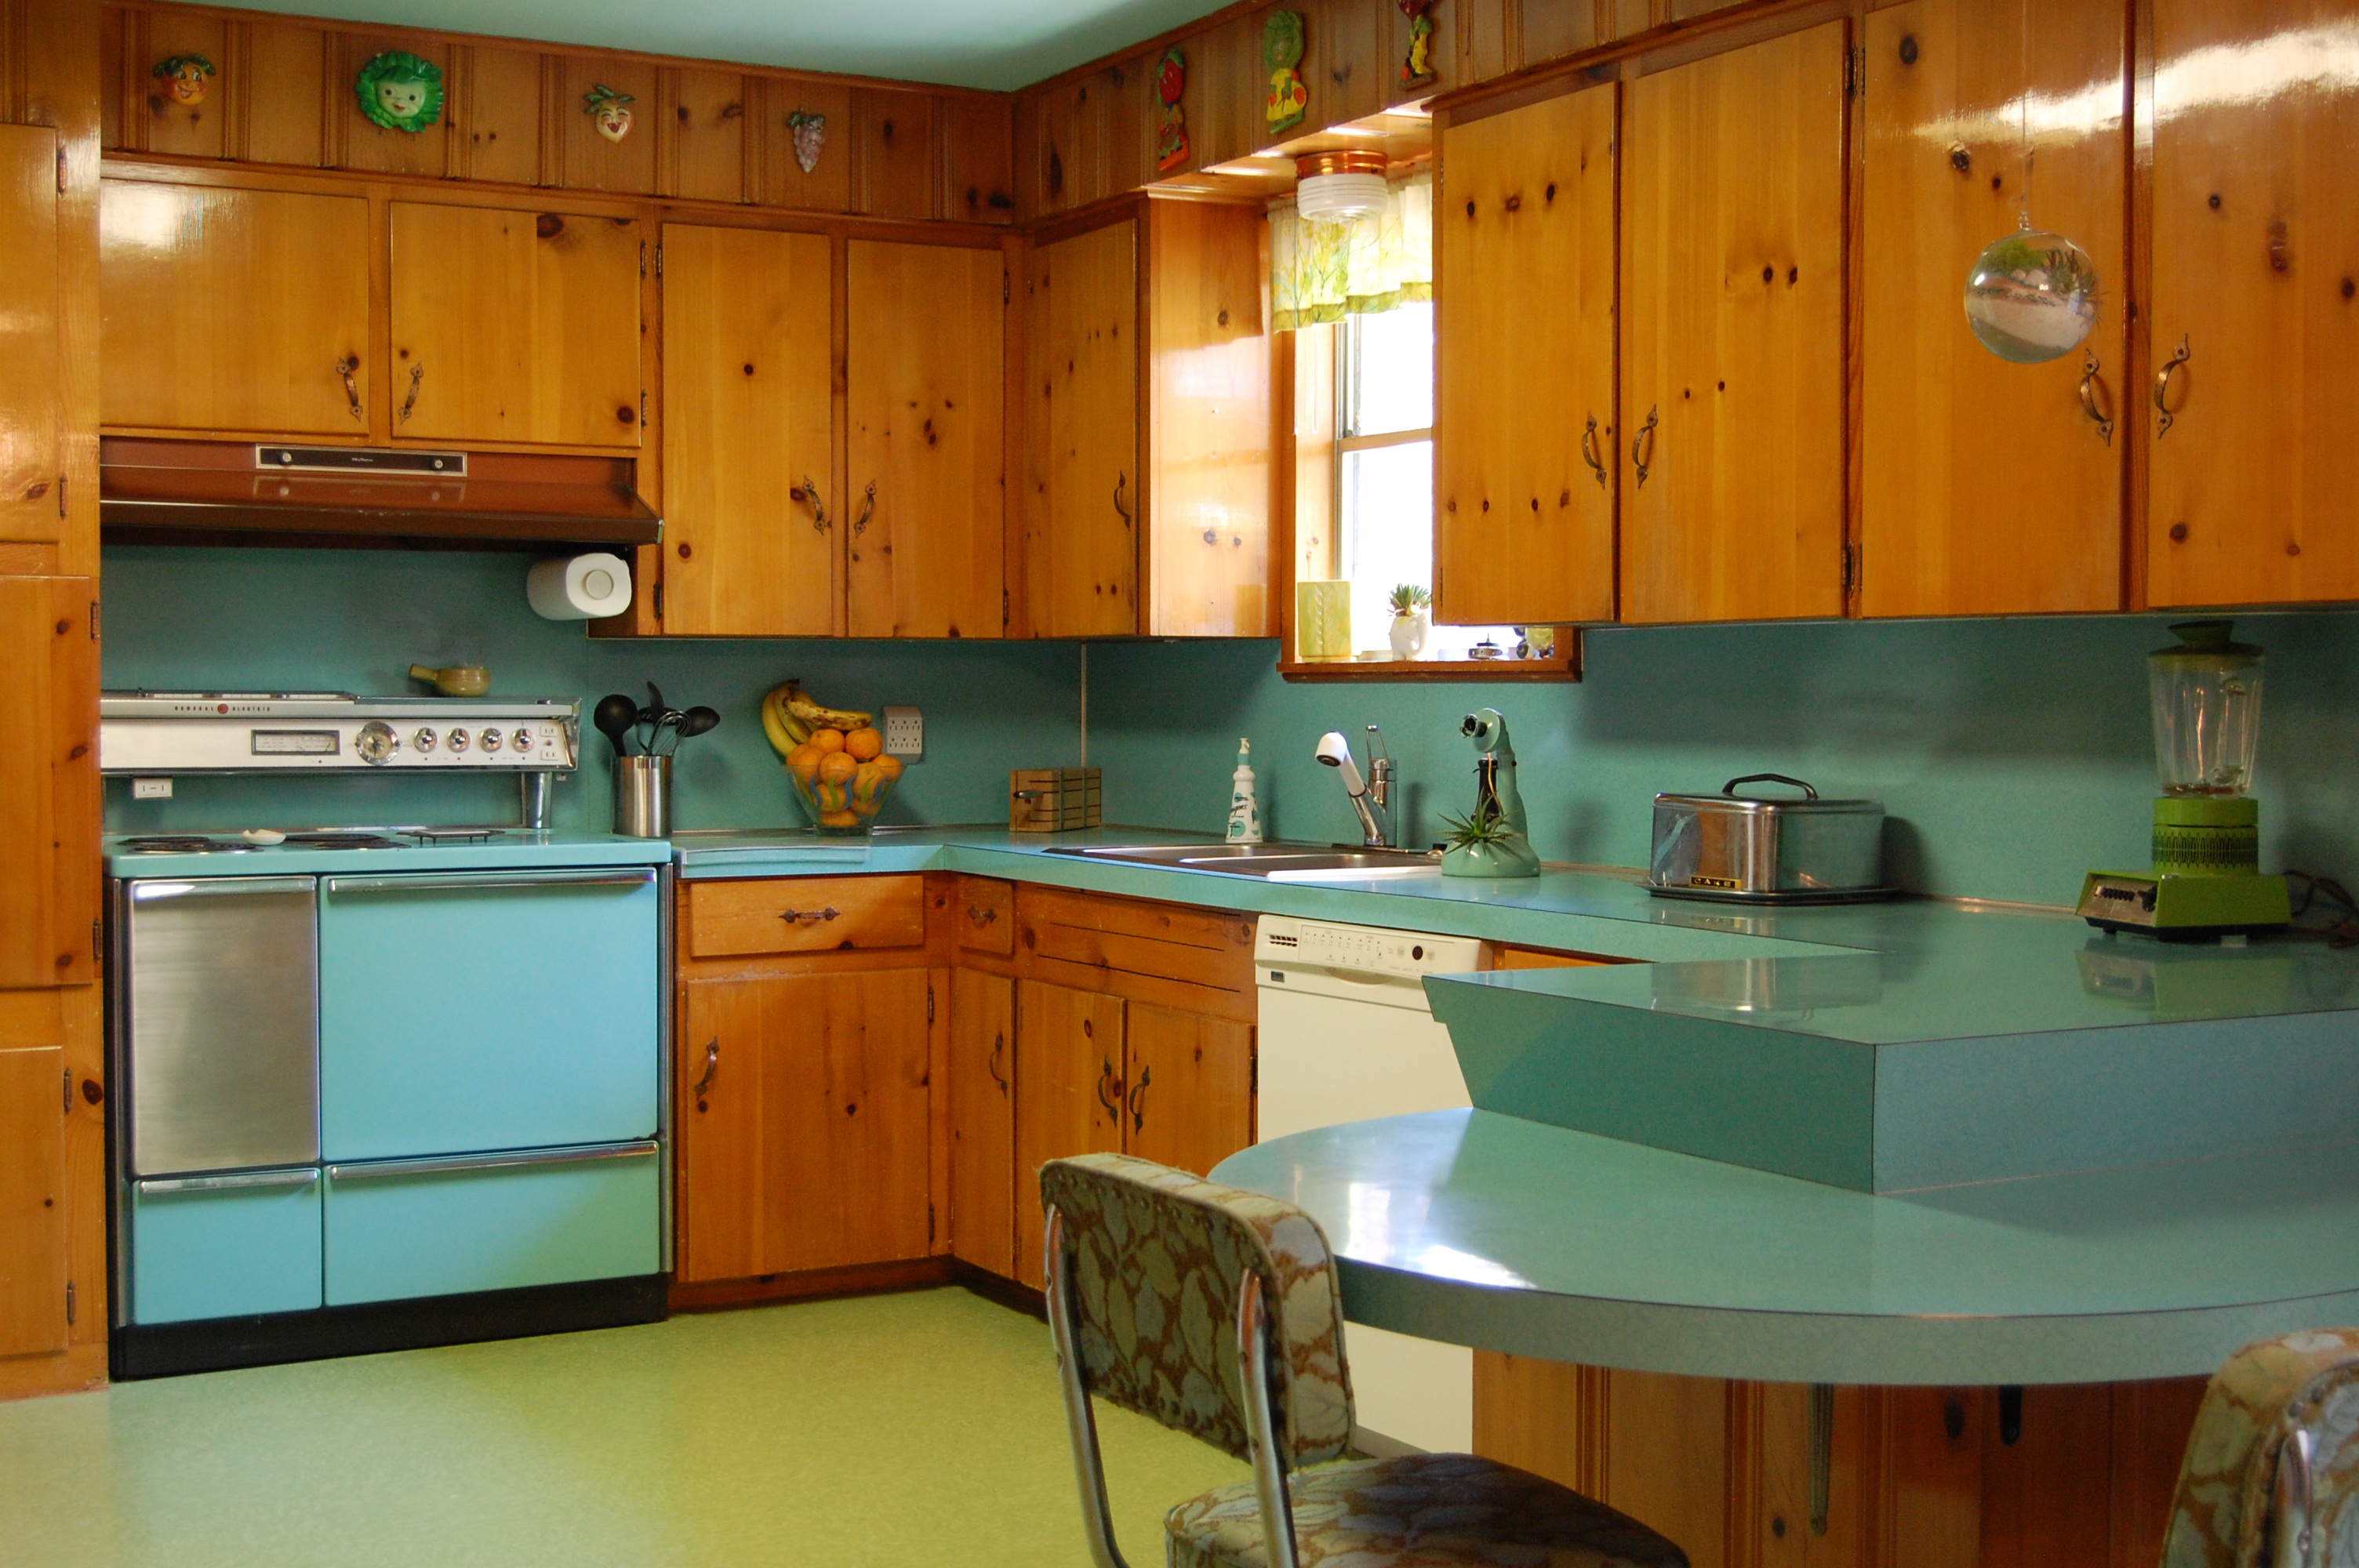 Pine Kitchen Cabinets For Knotty Wood Kitchen Cabinets Picfascom